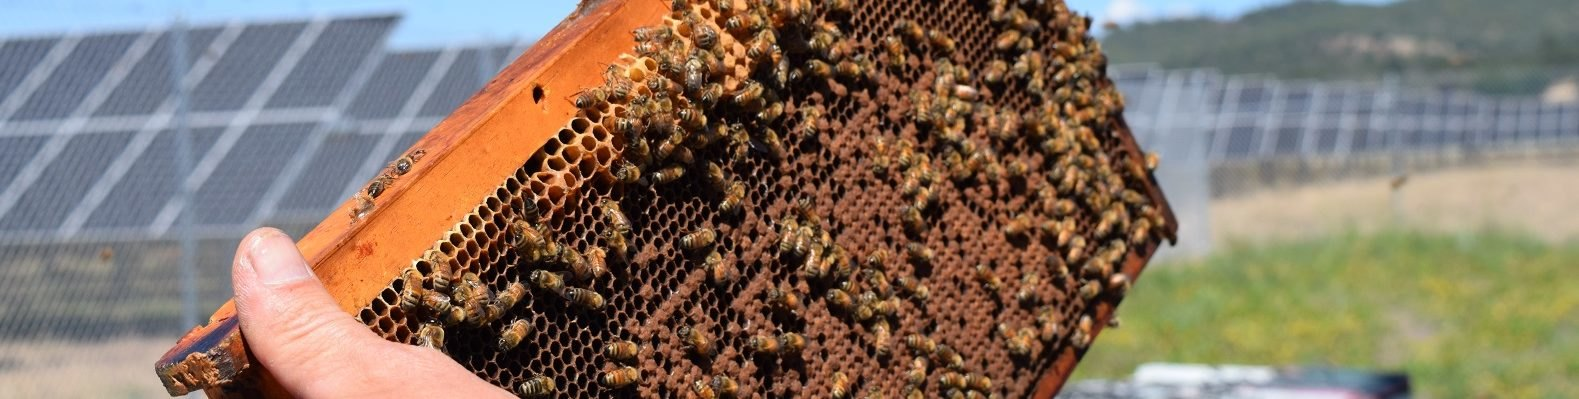 A close-up image of honey bees and hives near a solar farm